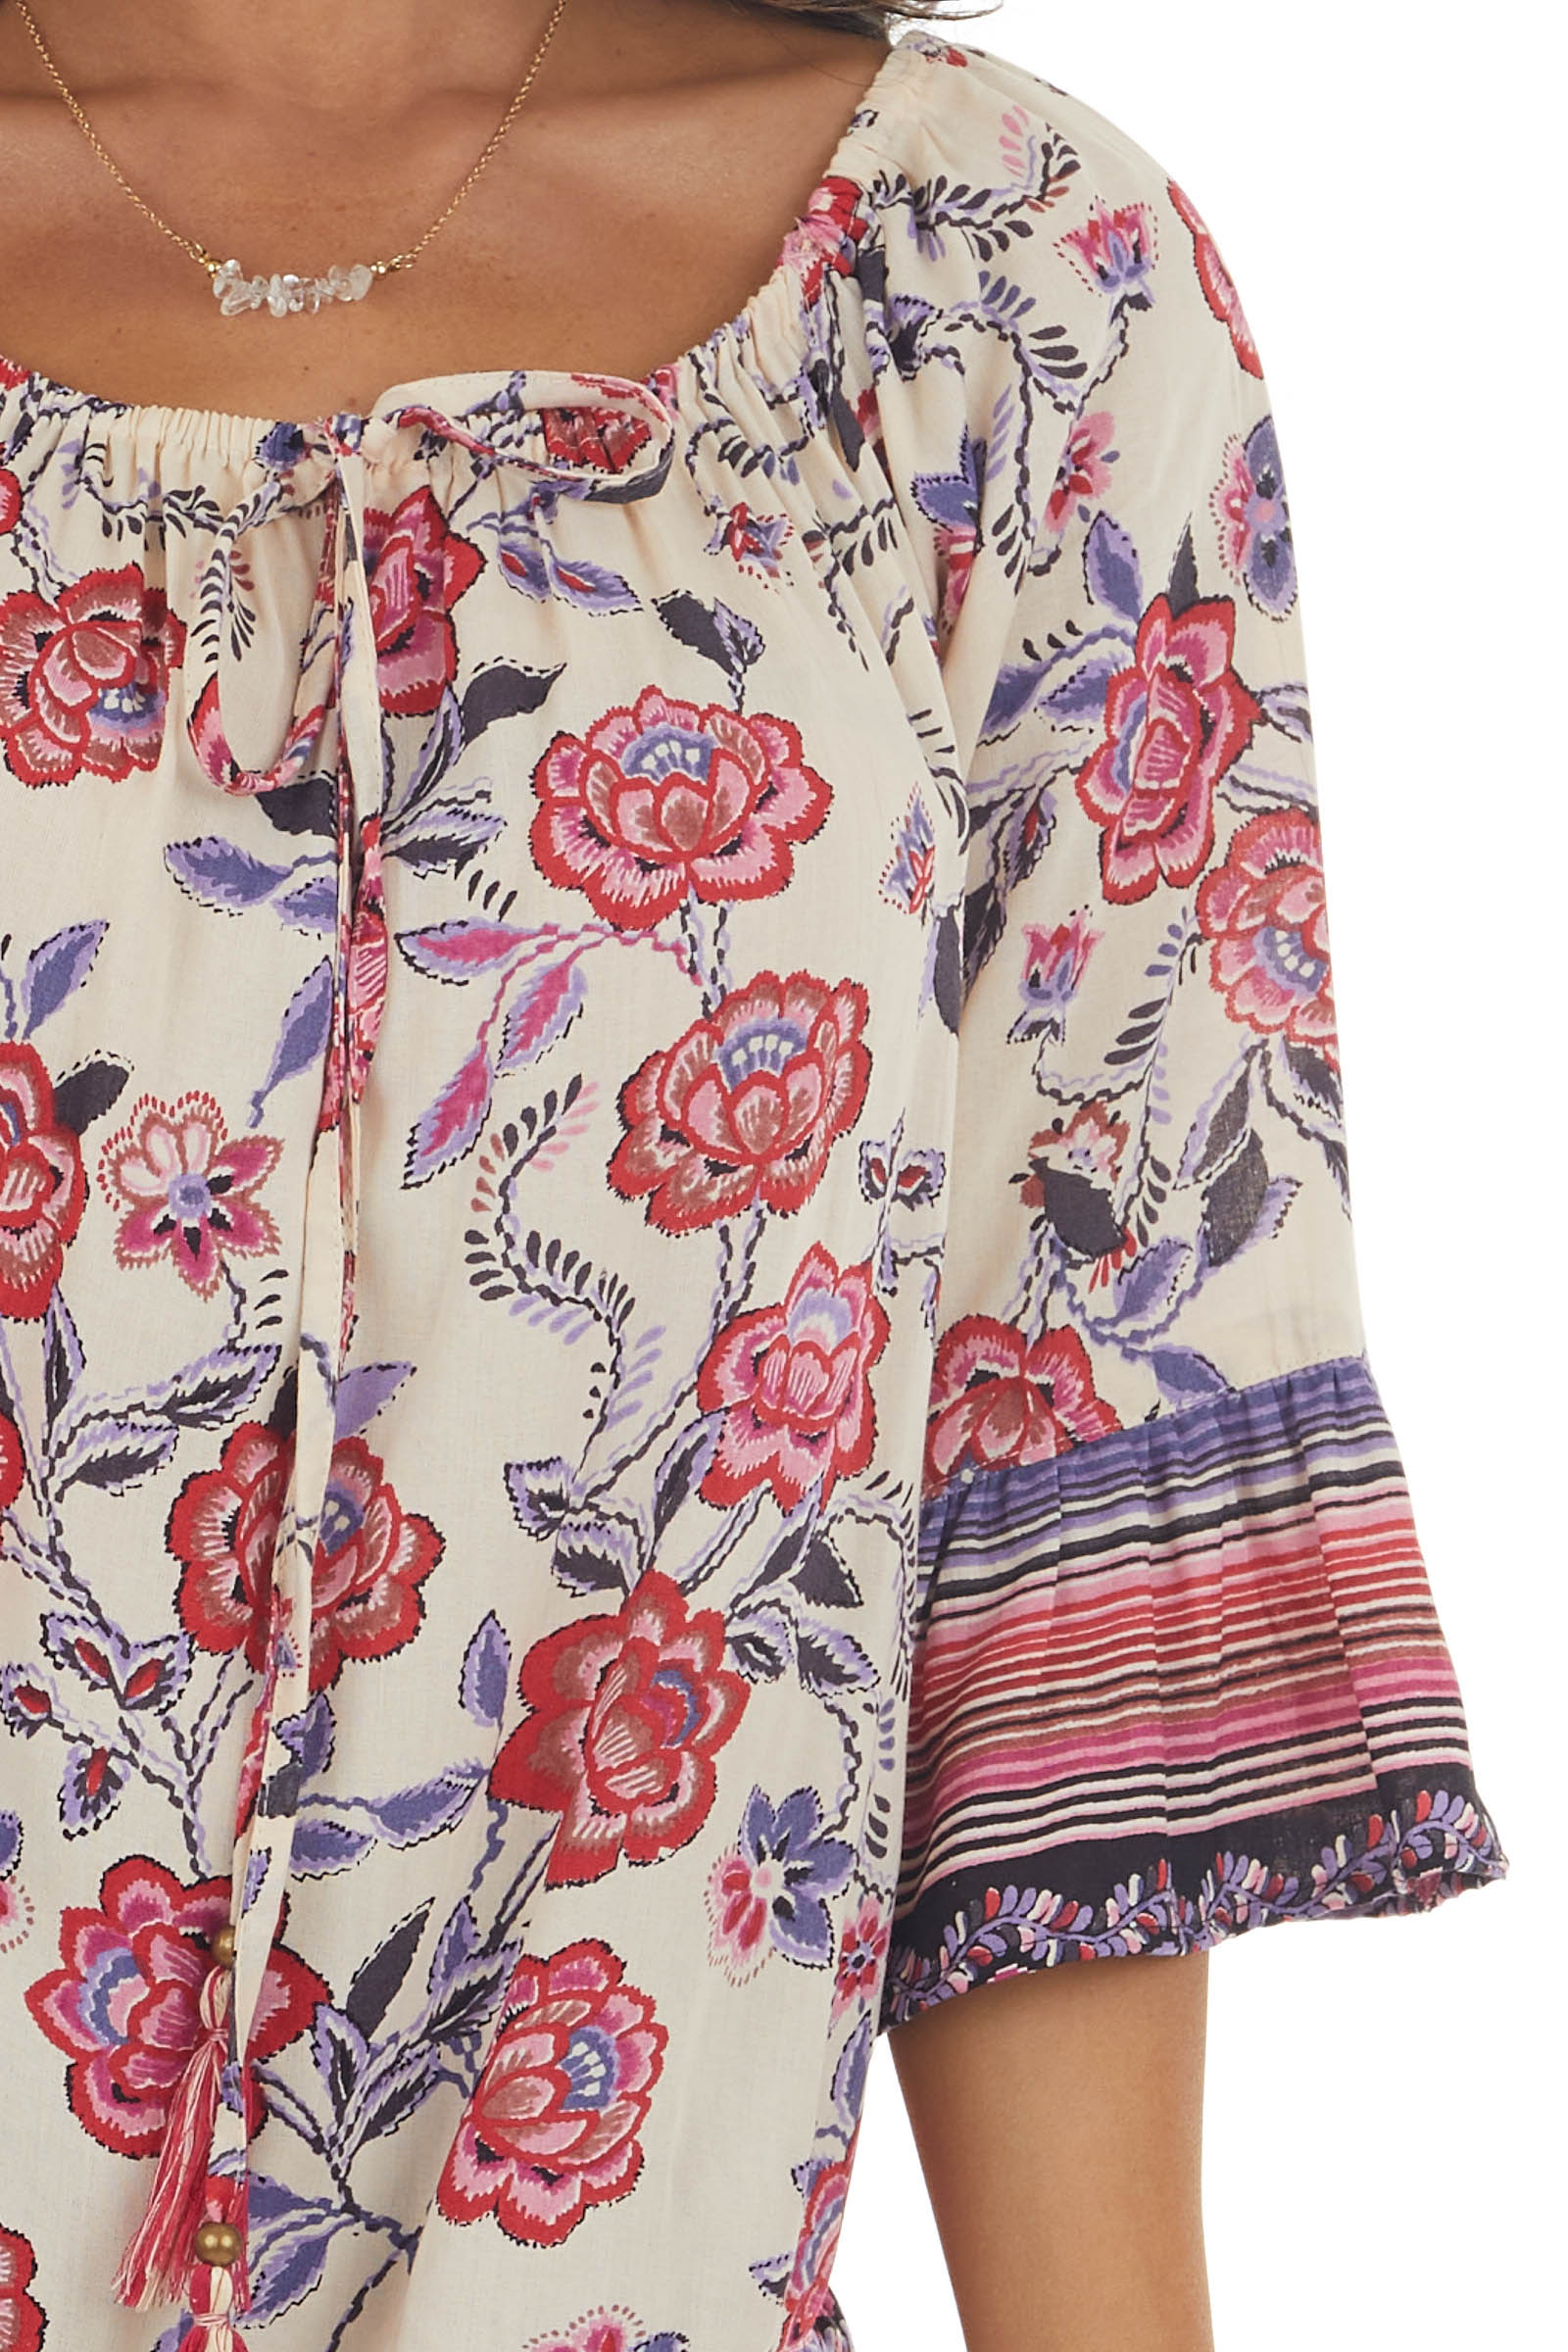 Desert Sand and Hot Pink Floral Print Blouse